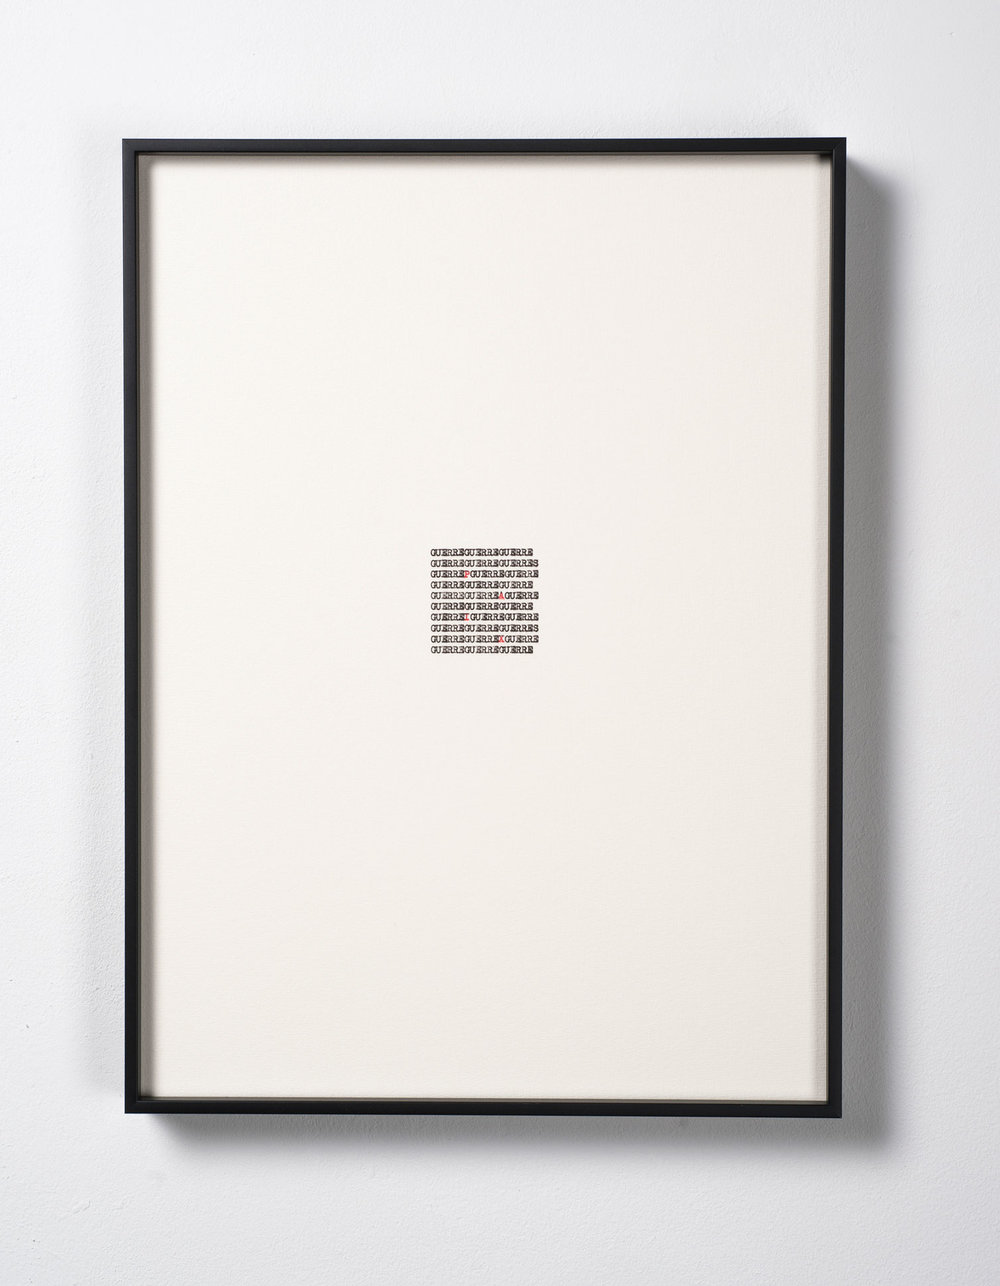 Calligrammes (Guillaume Apollinaire) II  , 2017  Tinta sobre papel / Ink on paper  37,5 x 27,5 cm